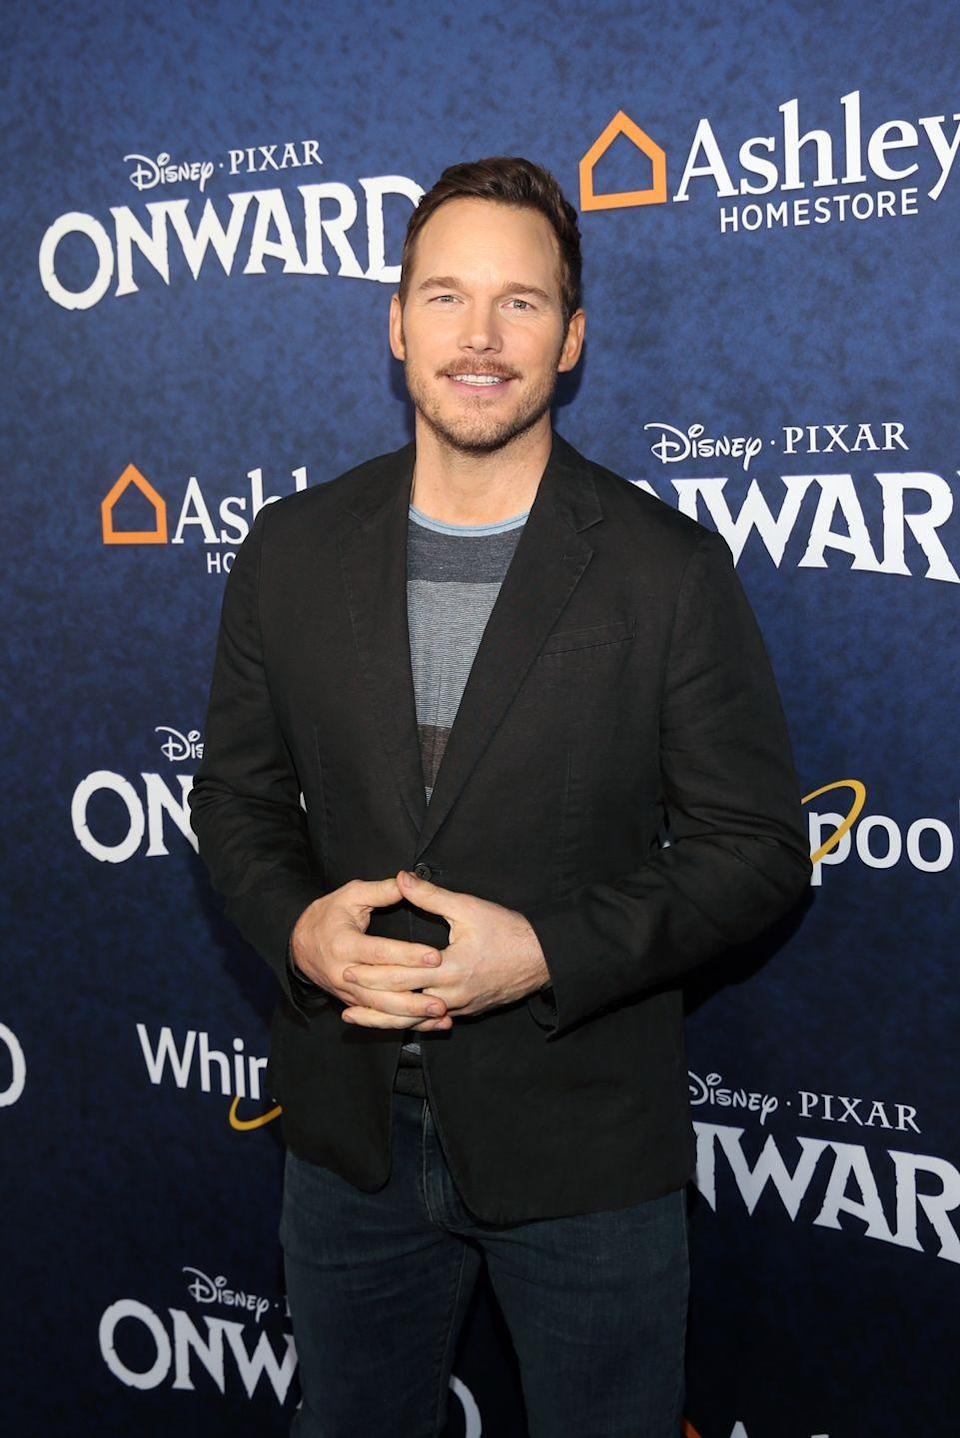 <p>Since <em>Parks and Rec </em>ended, Pratt has become almost a new person. After losing some weight and seriously toning up, Pratt nabbed roles in blockbusters like <em>Guardians of the Galaxy</em> and <em>Jurassic Park</em>, and became a bonafide sex symbol. His style became more sophisticated as he took on the role of leading man, and it's almost hard to believe he ever played silly Andy. </p>